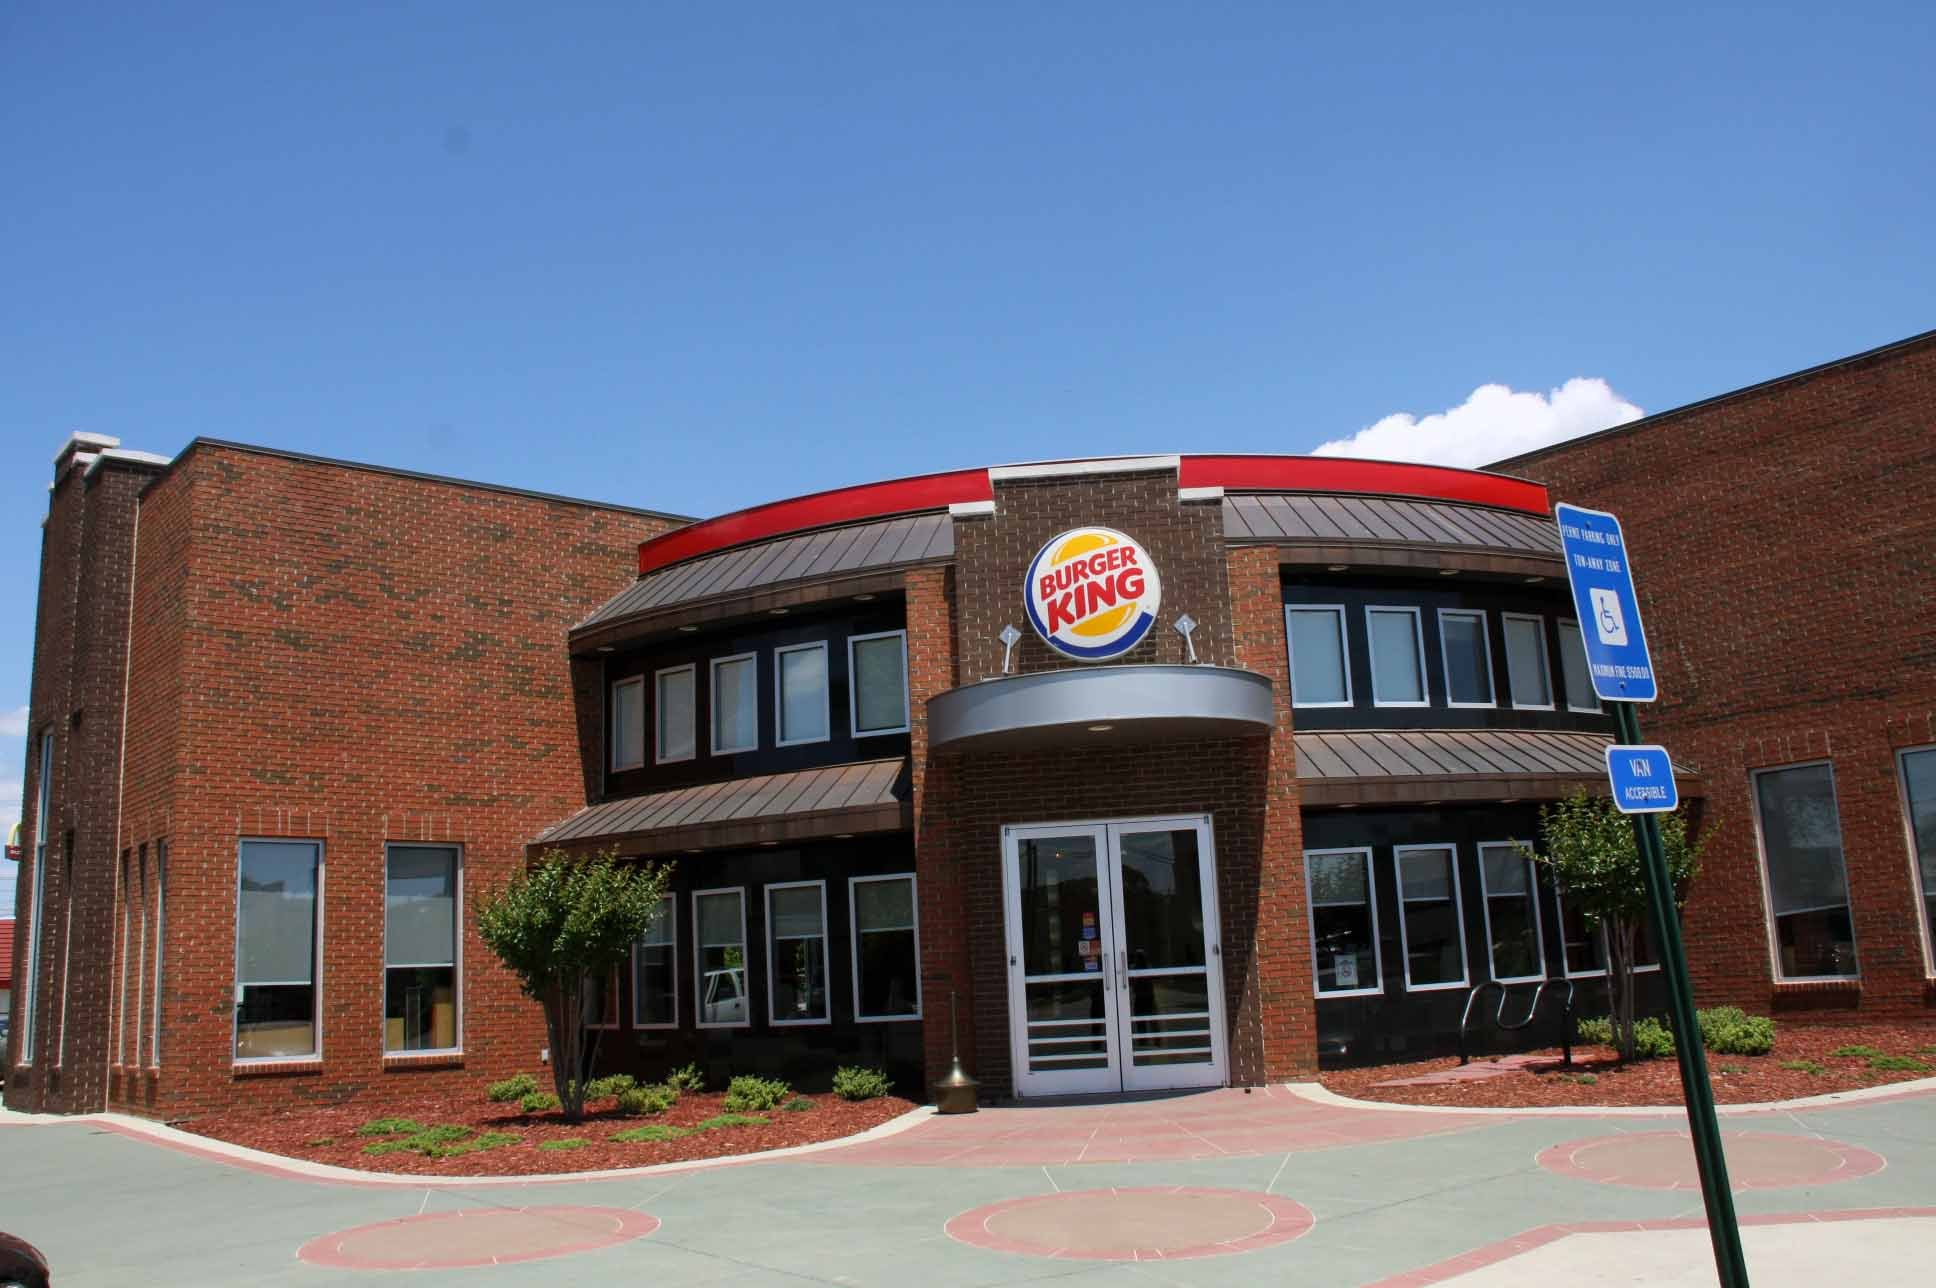 the burger kings in columbus a work of art macon house live columbus ga georgia ga. Black Bedroom Furniture Sets. Home Design Ideas